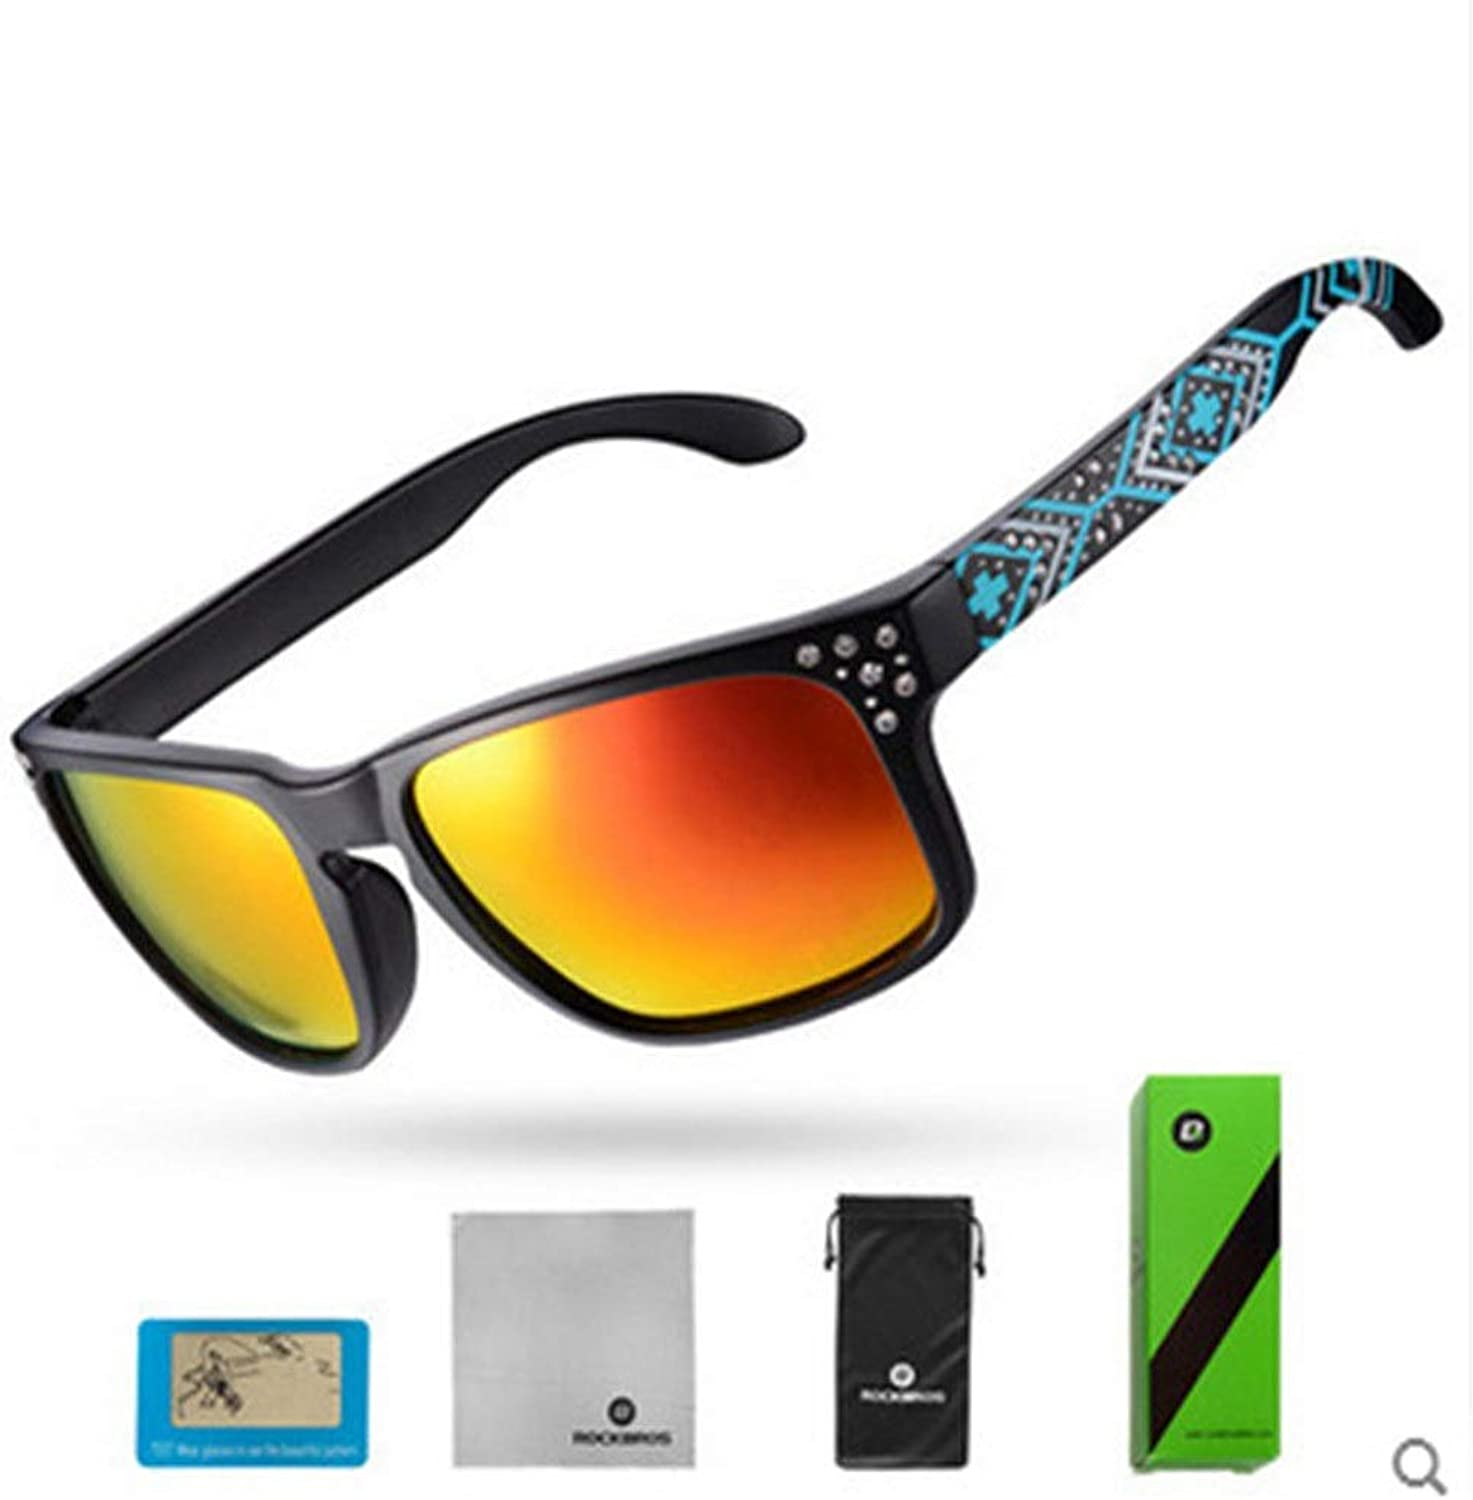 Cycling Running Glasses with Outdoor Sports Cycling Polarized Sunglasses Bikeing Outdoor Sports Glasses Men's and Women's (color   Black, Size   Free Size)